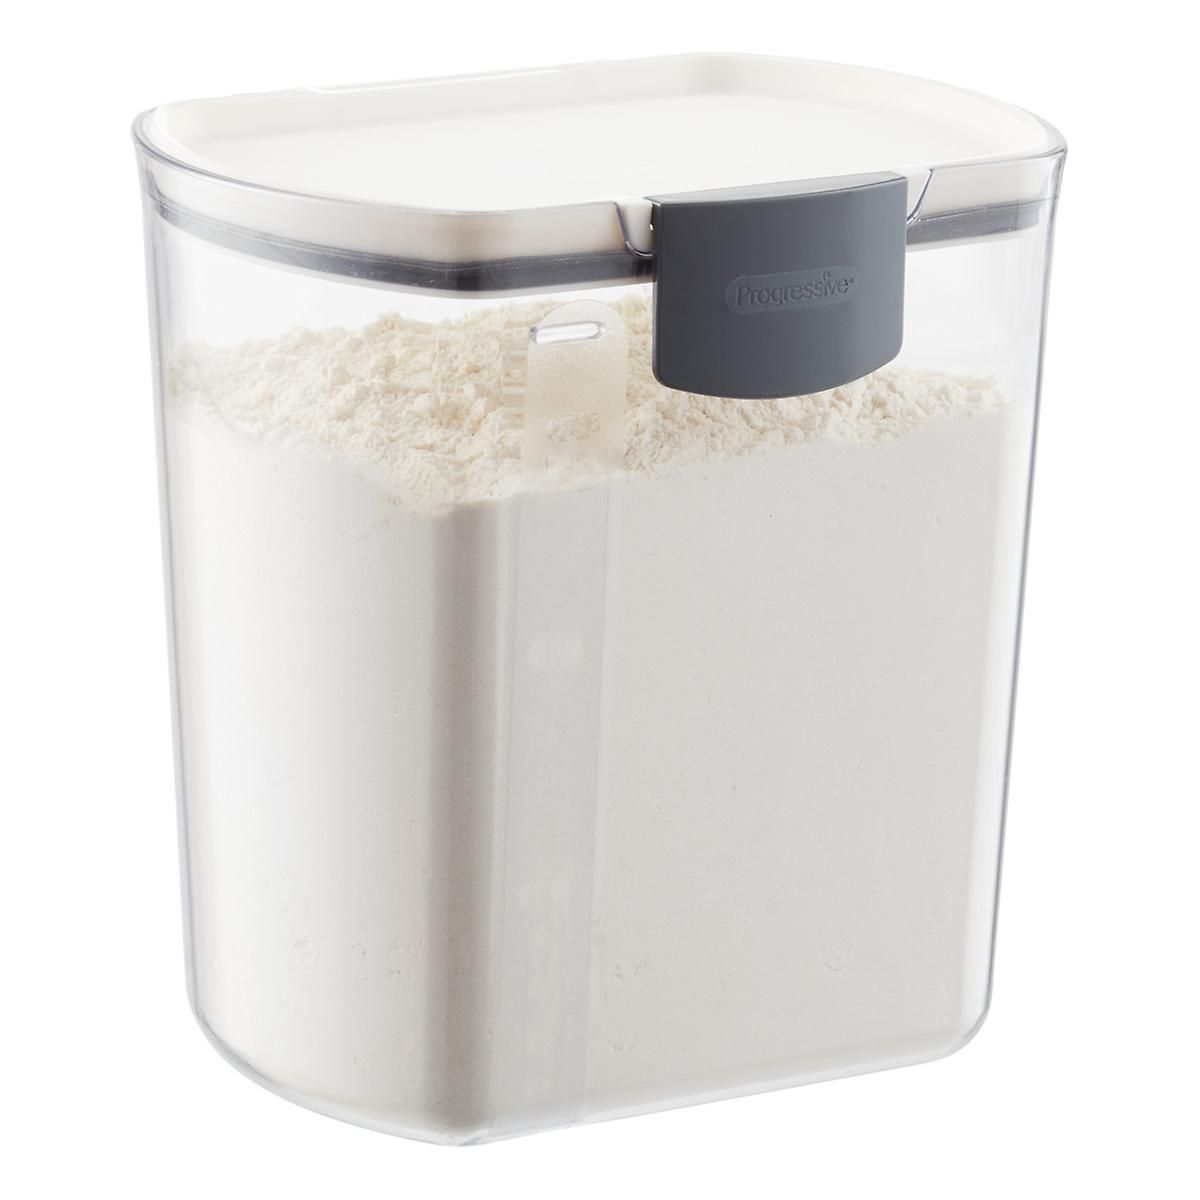 Prokeeper 4 Qt Flour Container Flour Container Dry Food Storage Flour Storage Container